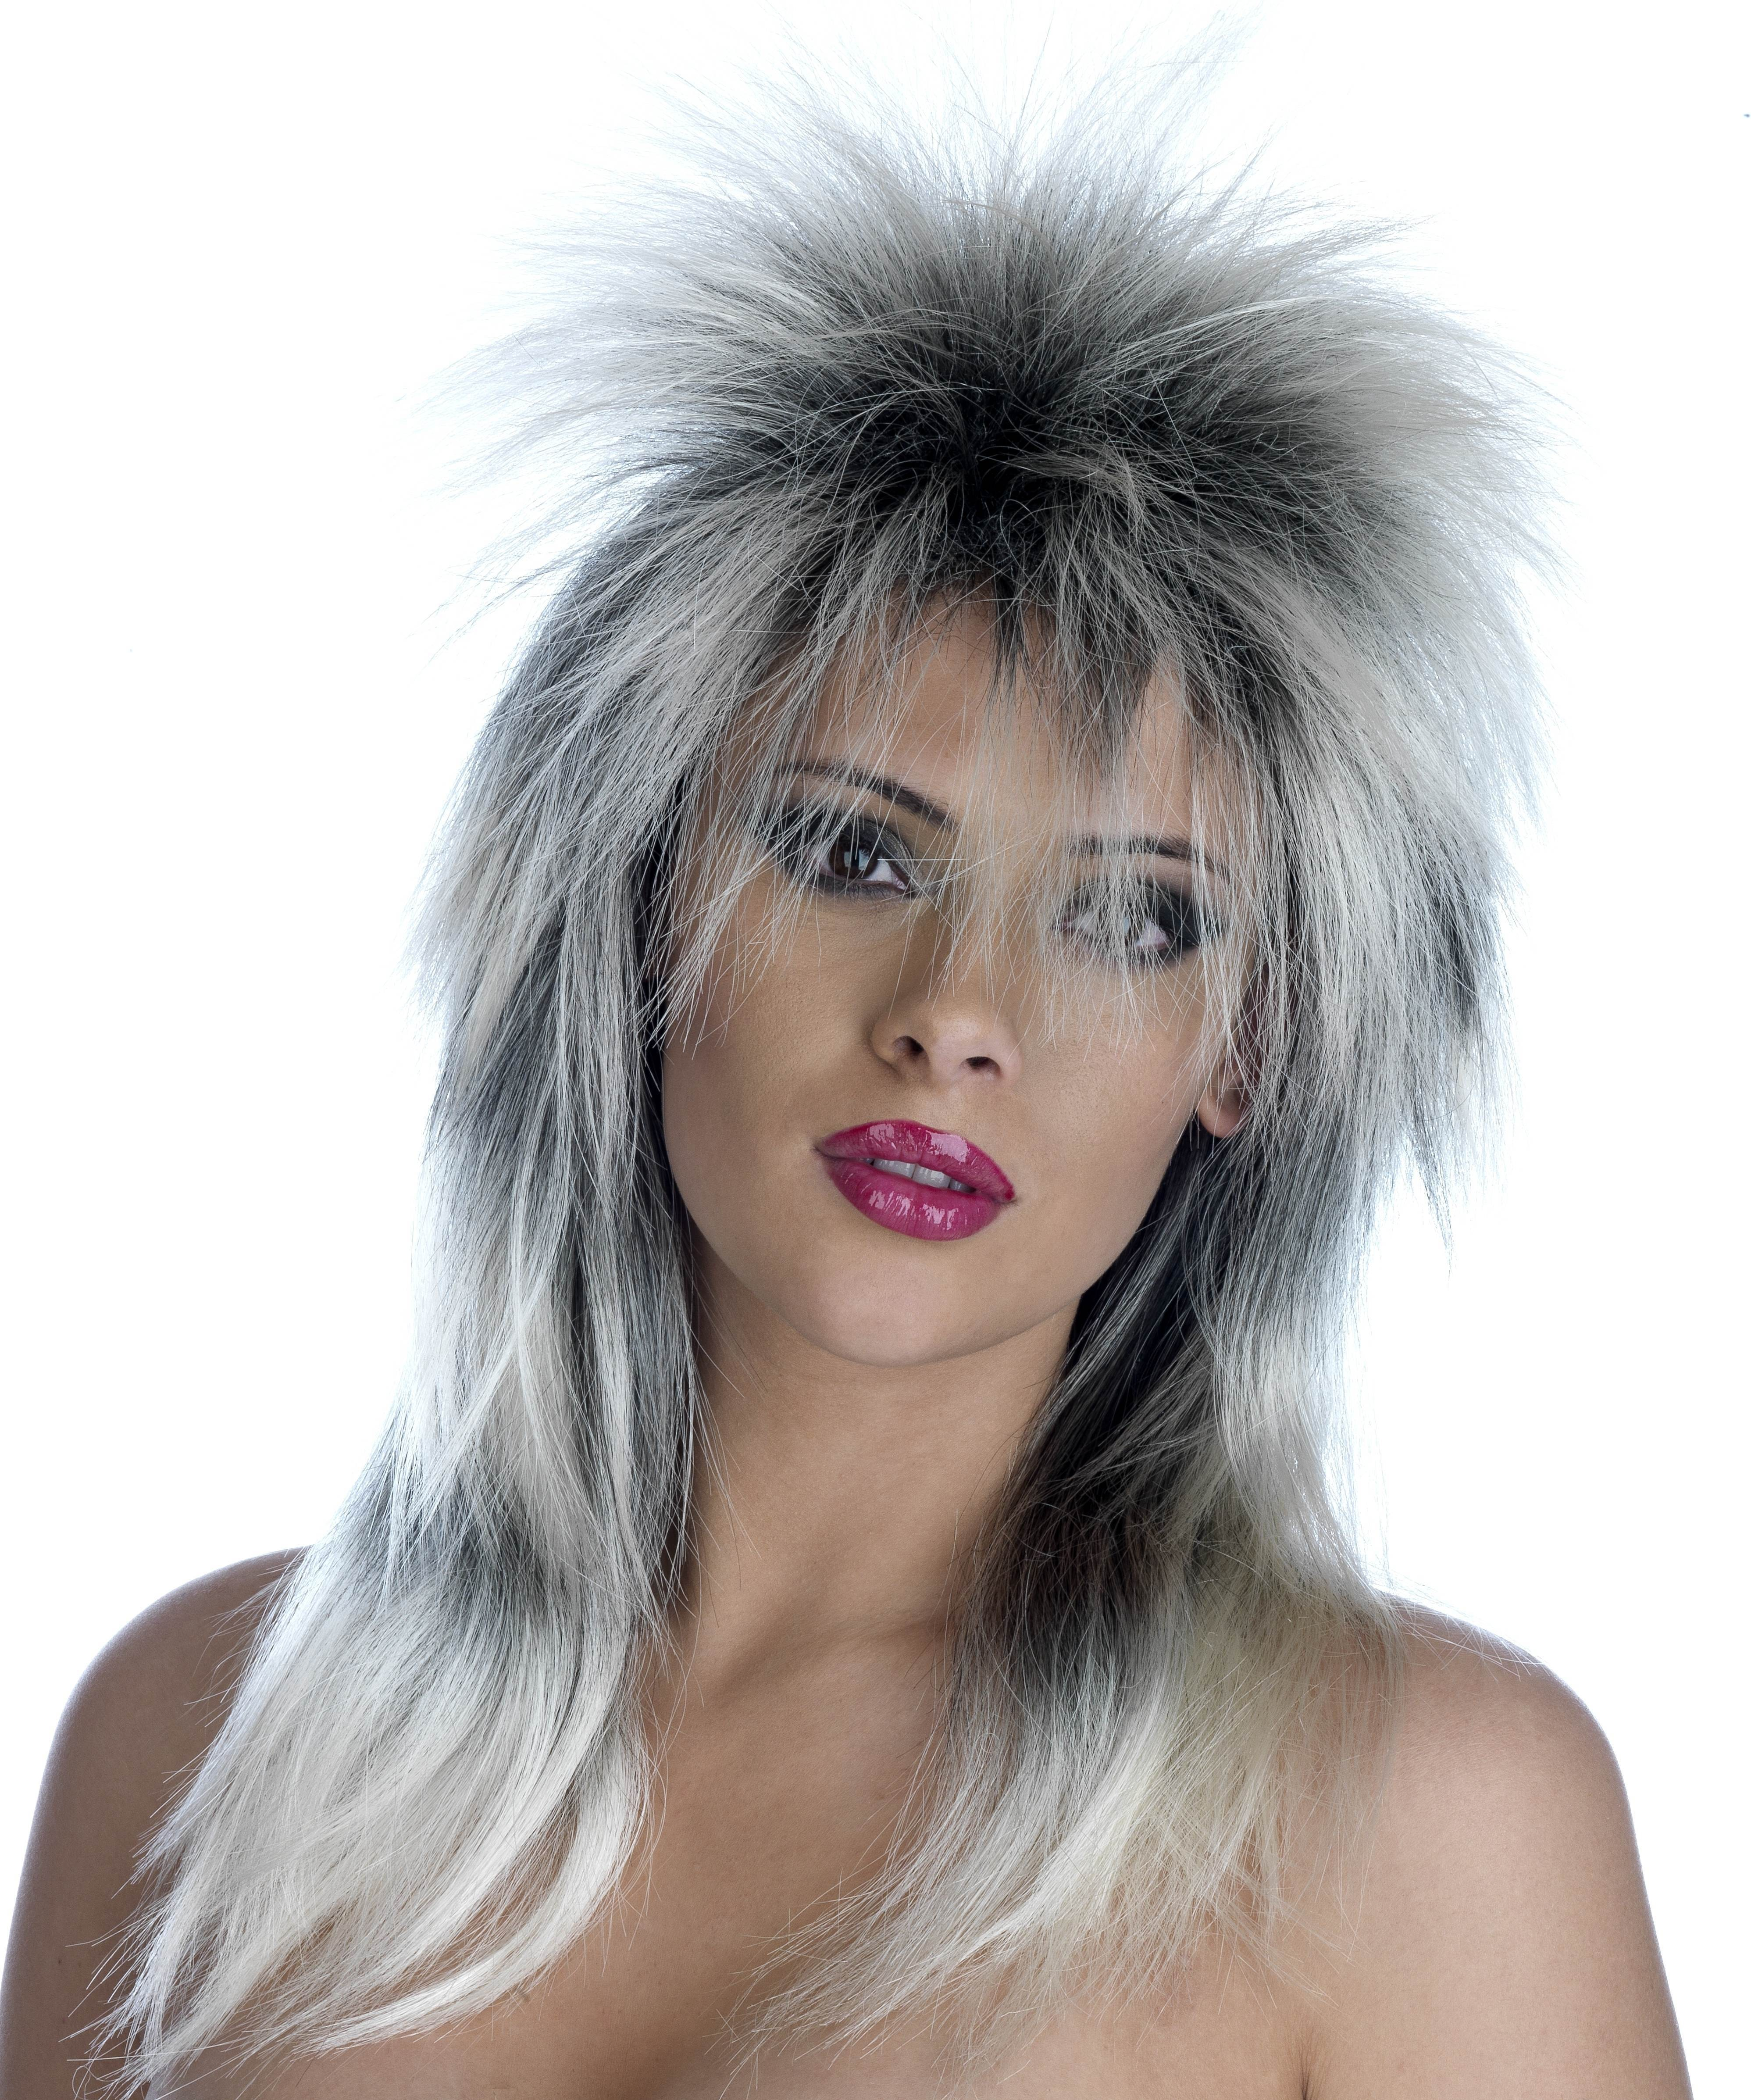 Tina Turner Blonde / Black Spiky Wig (170G) One Size (Music)